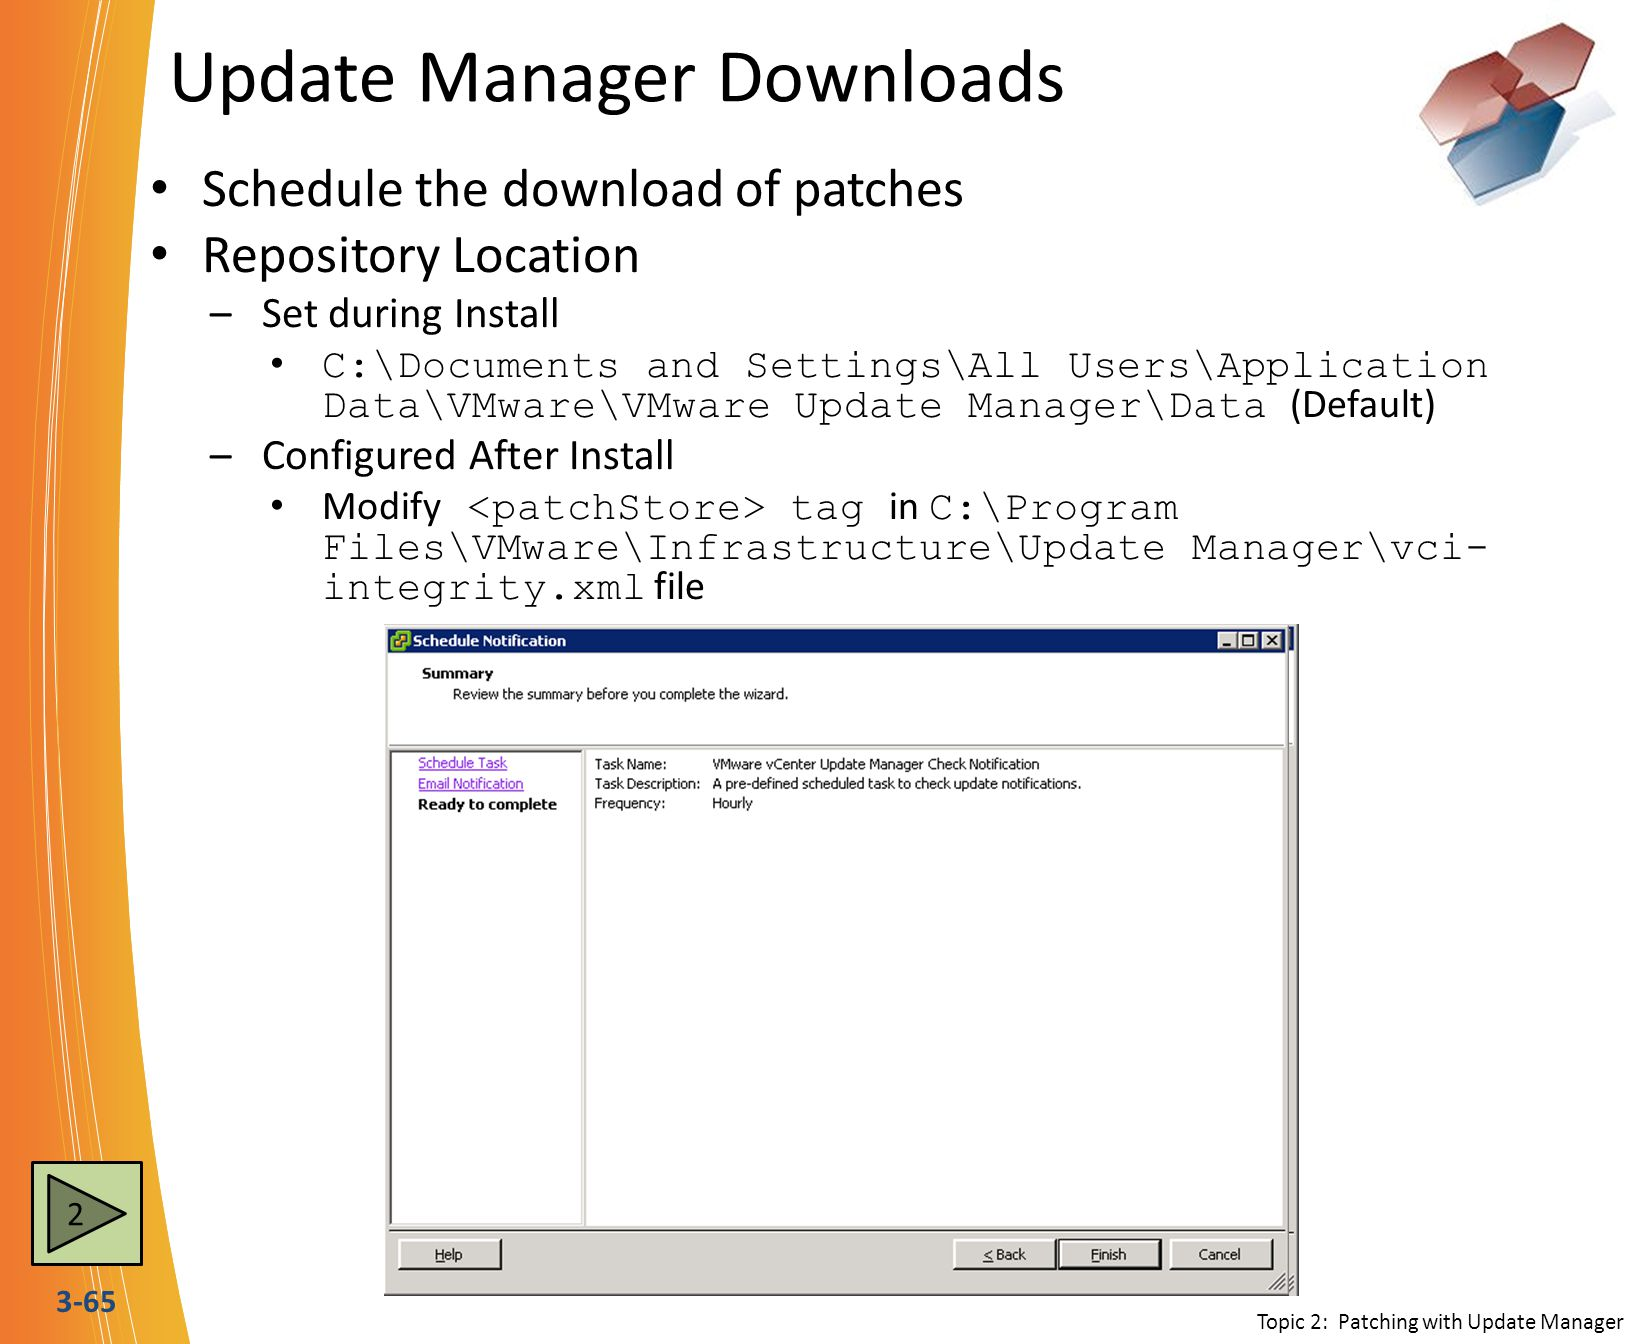 Update Manager Downloads